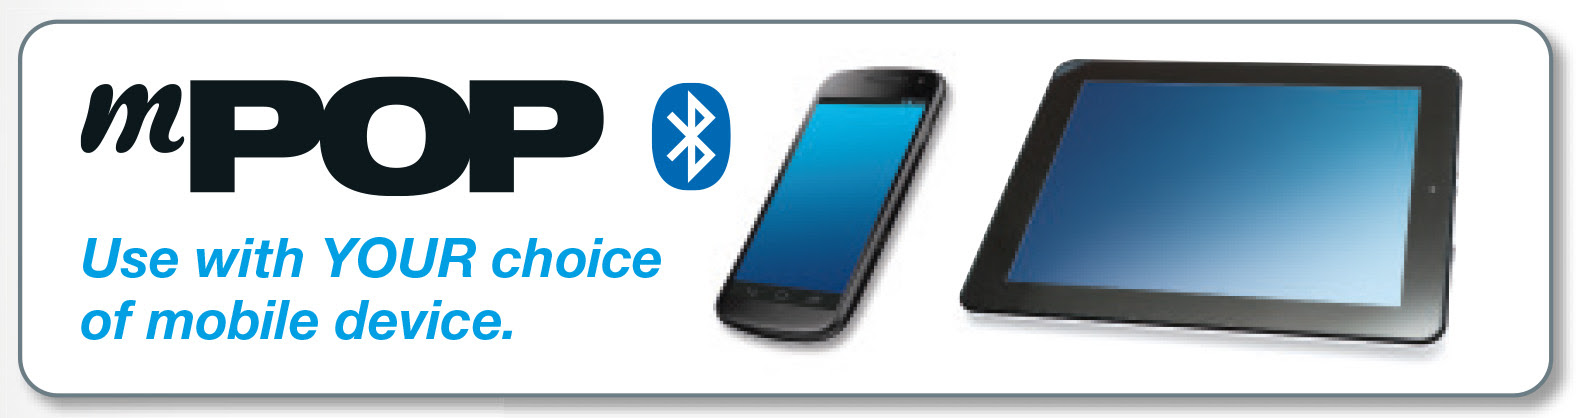 THE mPOP ADVANCE POS SOLUTION